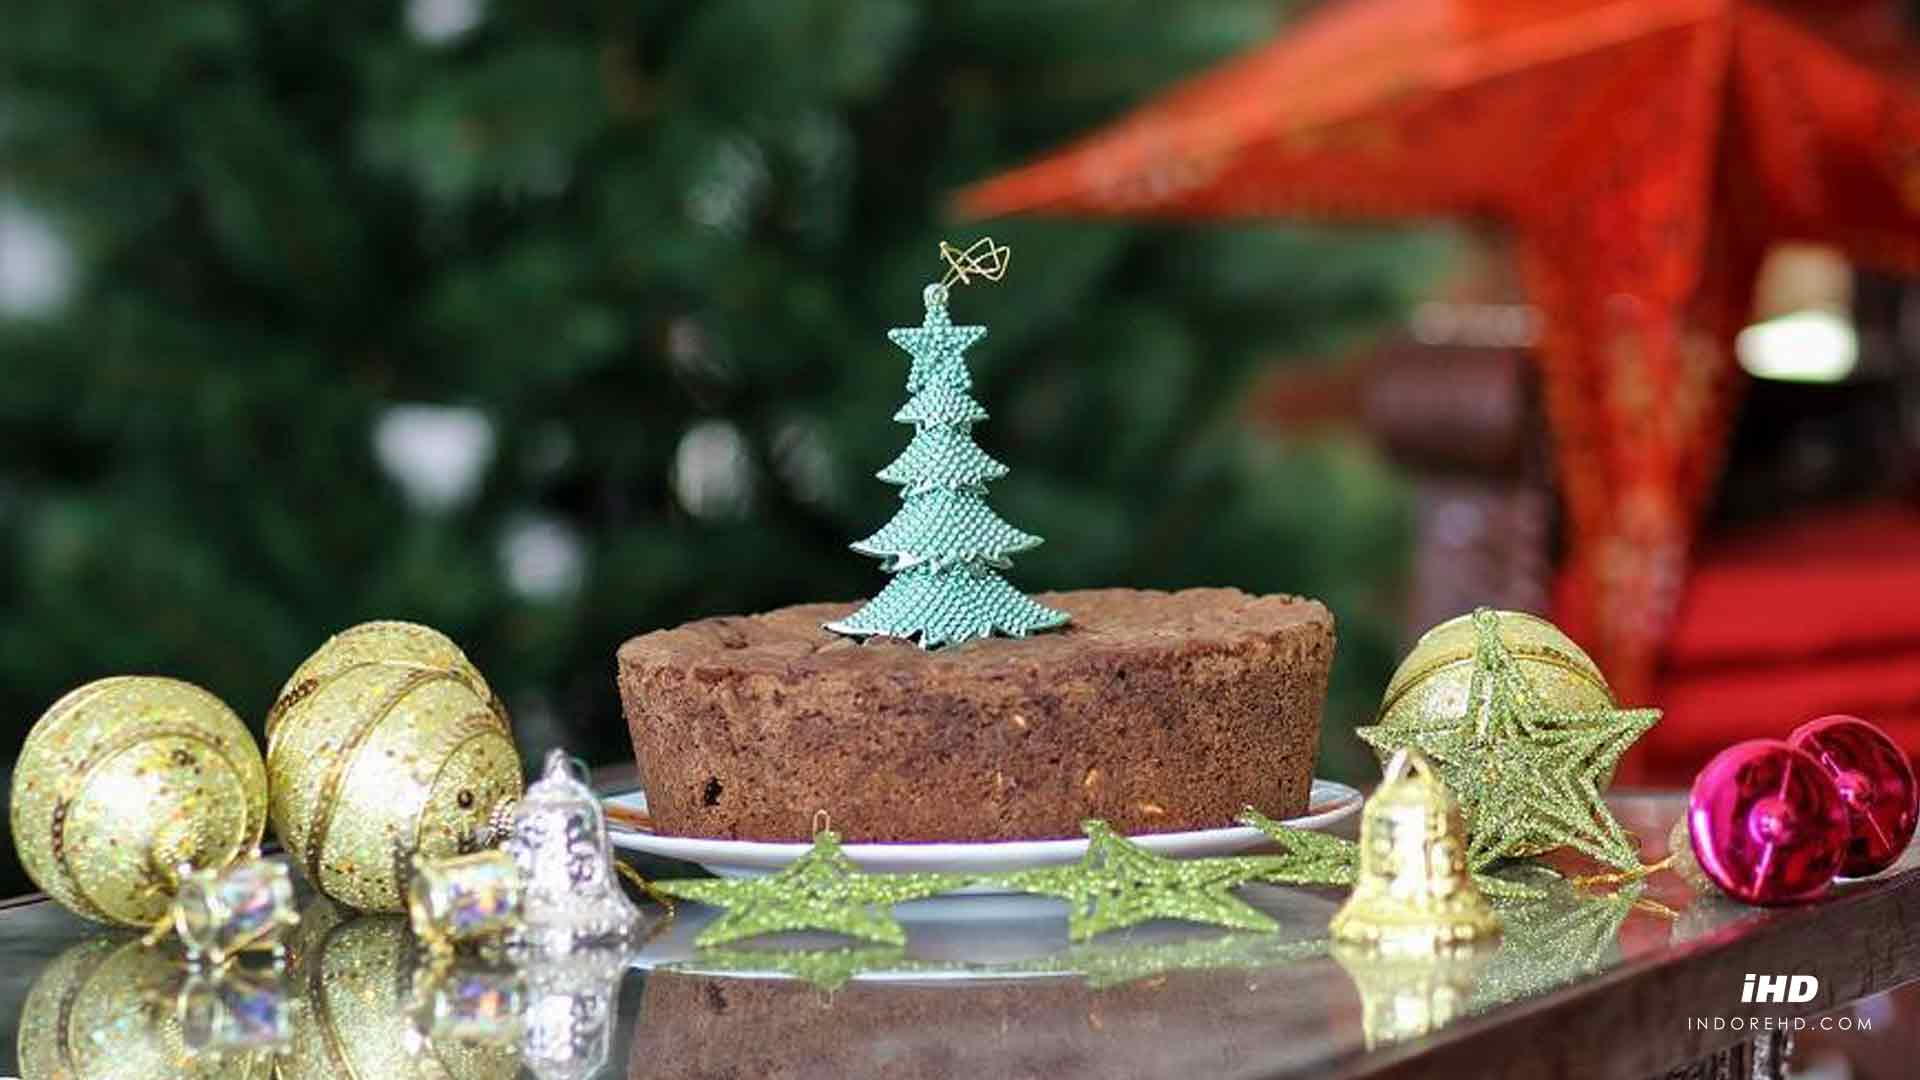 christmas-cakes-options-2016-indorehd